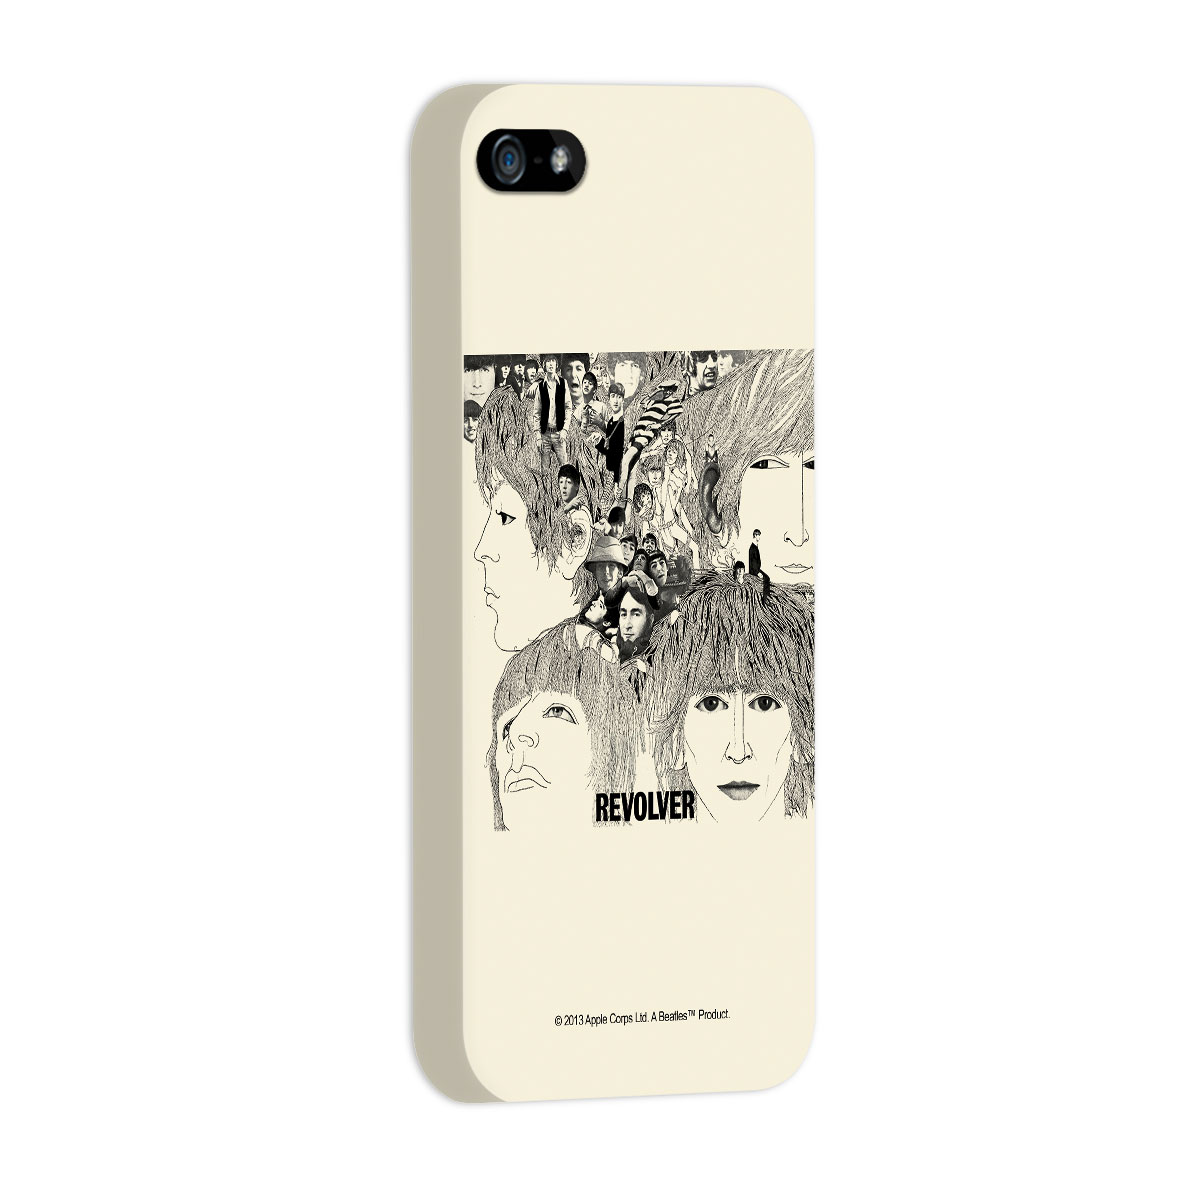 Capa de iPhone 5/5S The Beatles Revolver